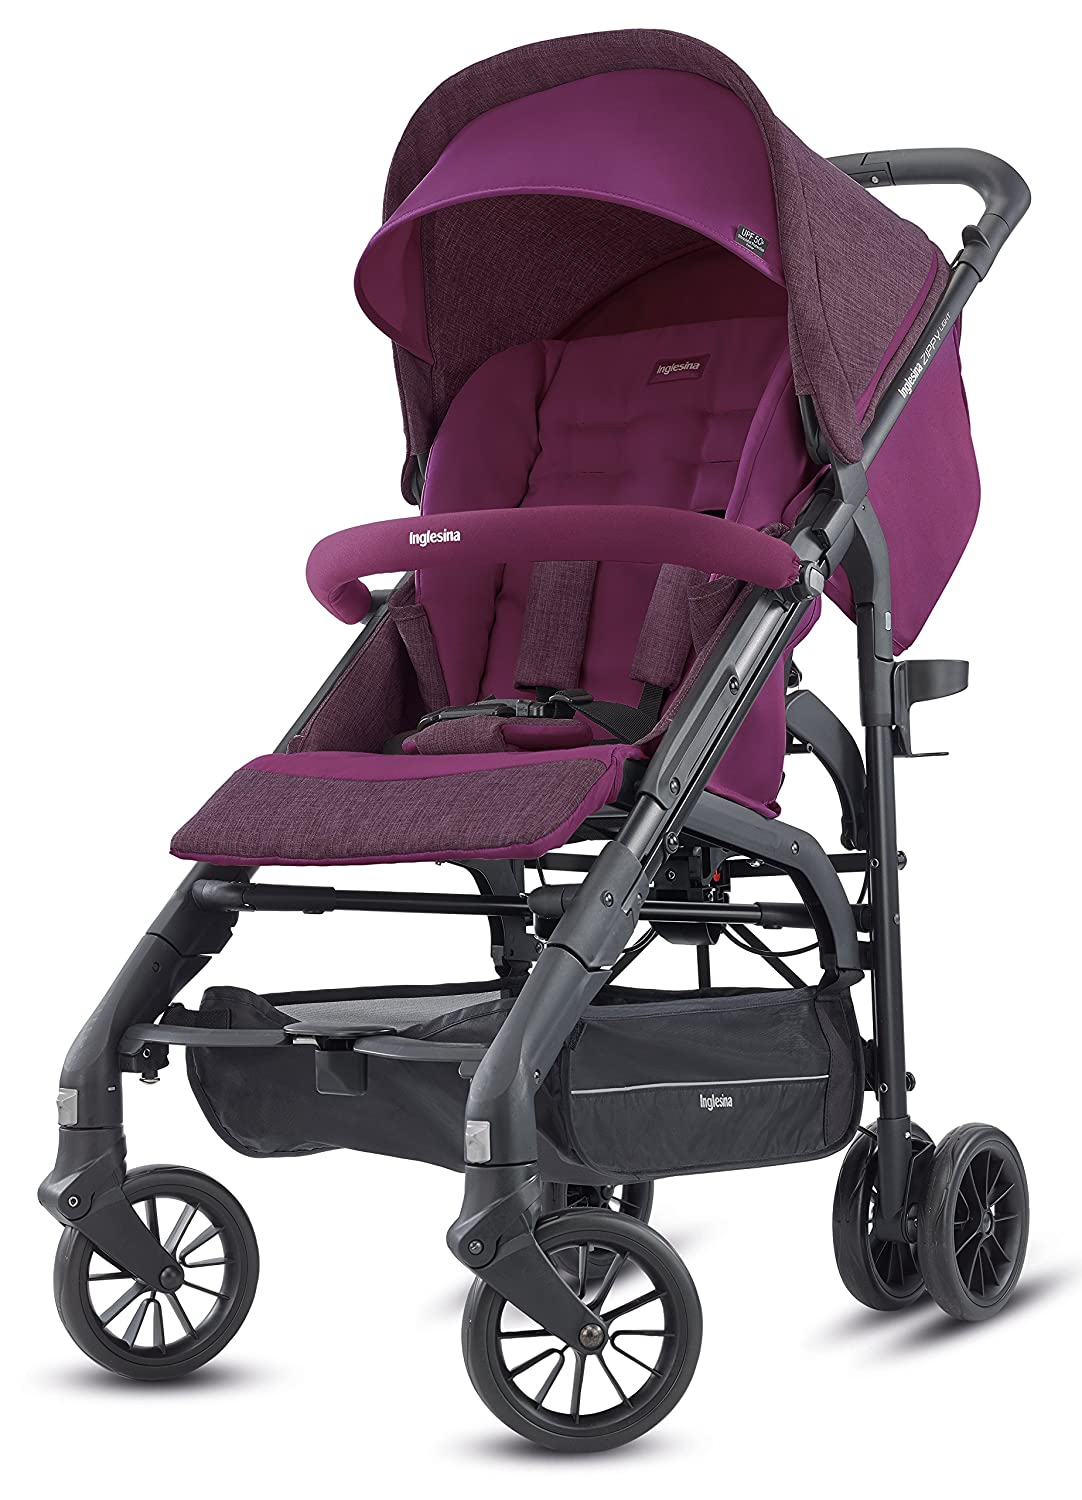 Inglesina Zippy Light Stroller - Car Seat Compatible Lightweight Stroller with Premium Accessories Included {Raspberry Purple}